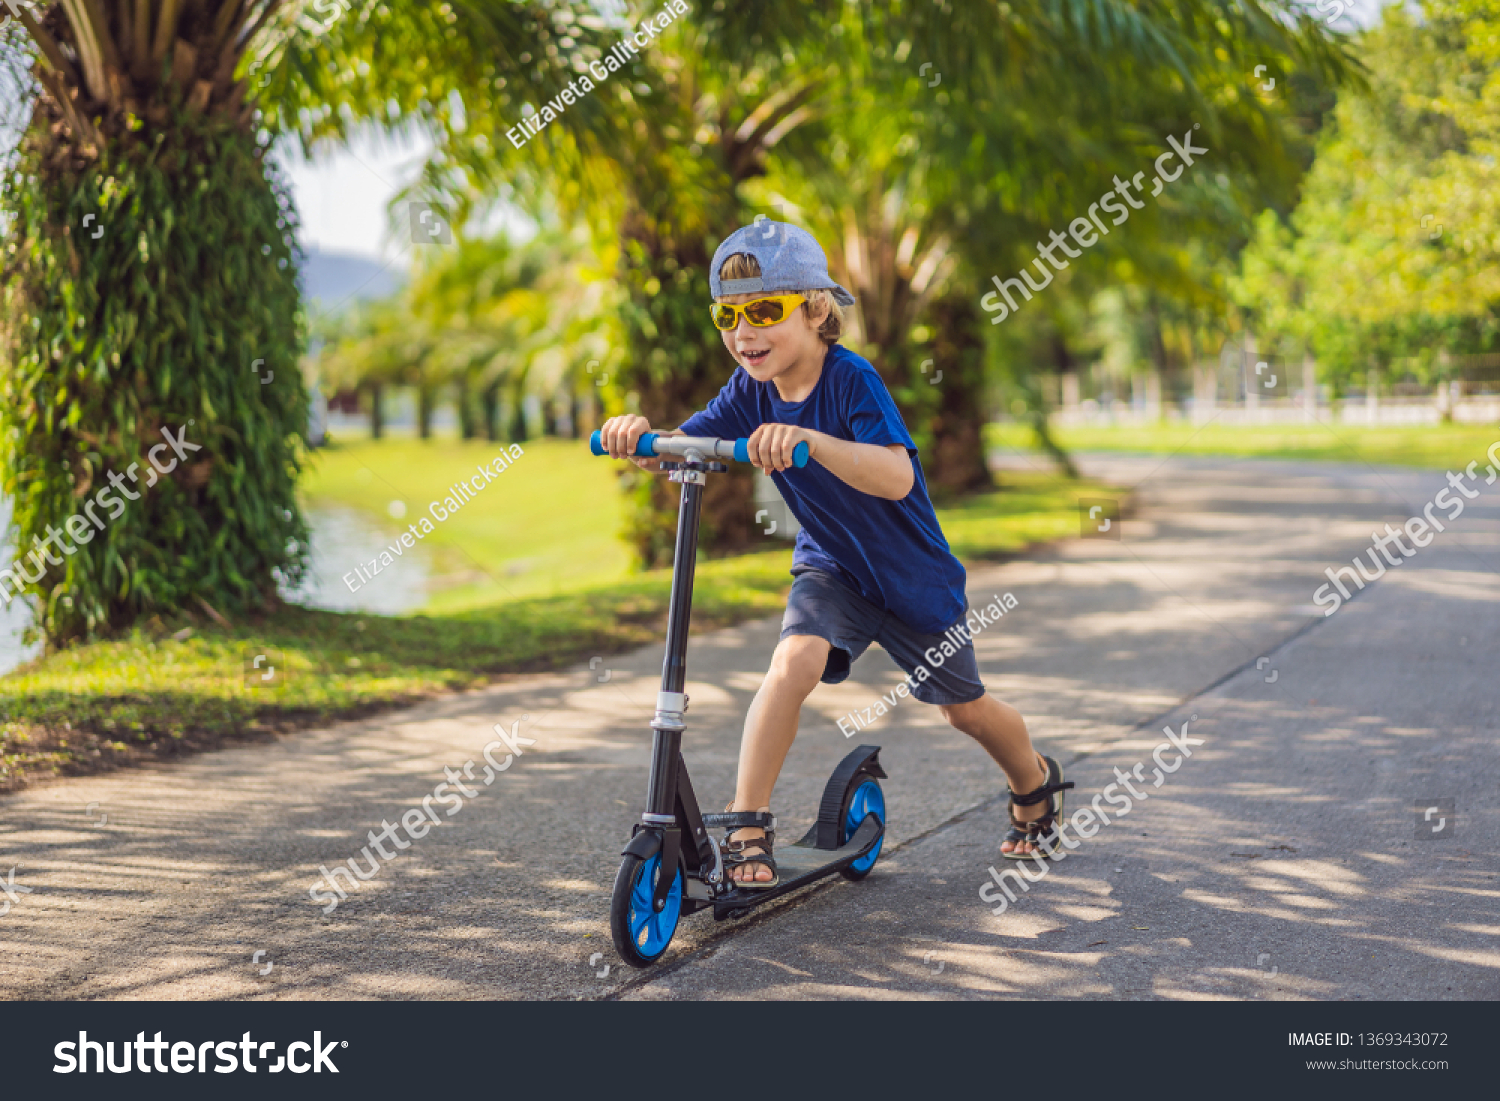 Child on kick scooter in park. Kids learn to skate roller board. Little boy skating on sunny summer day. Outdoor activity for children on safe residential street. Active sport for preschool kid #1369343072